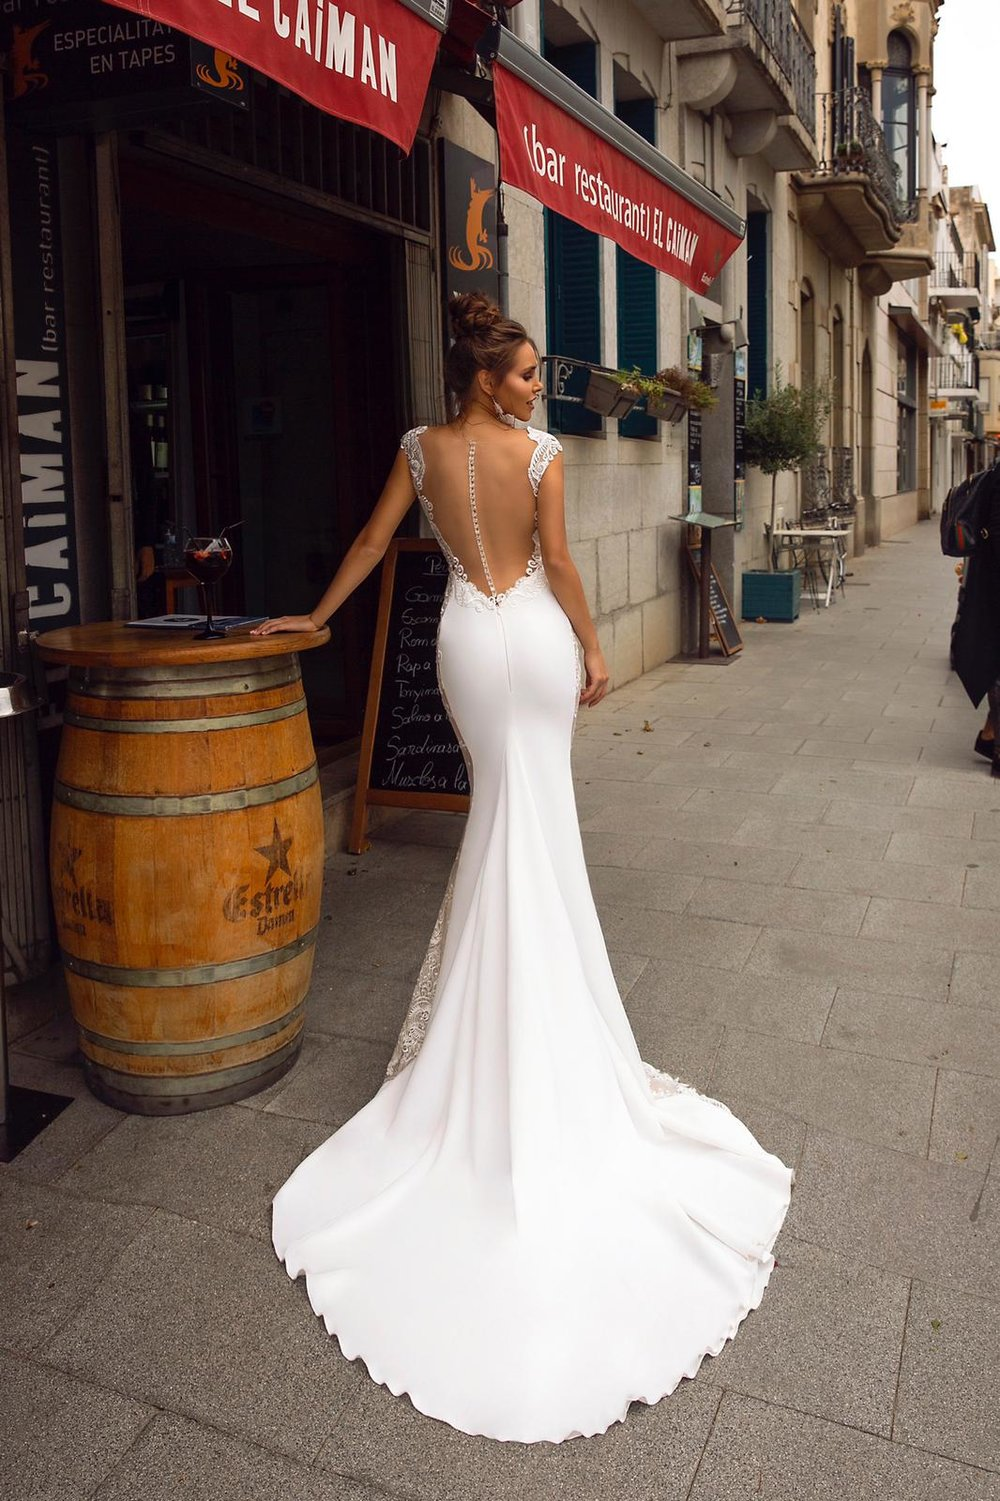 ALEXIA wedding dress by TINA VALERDI